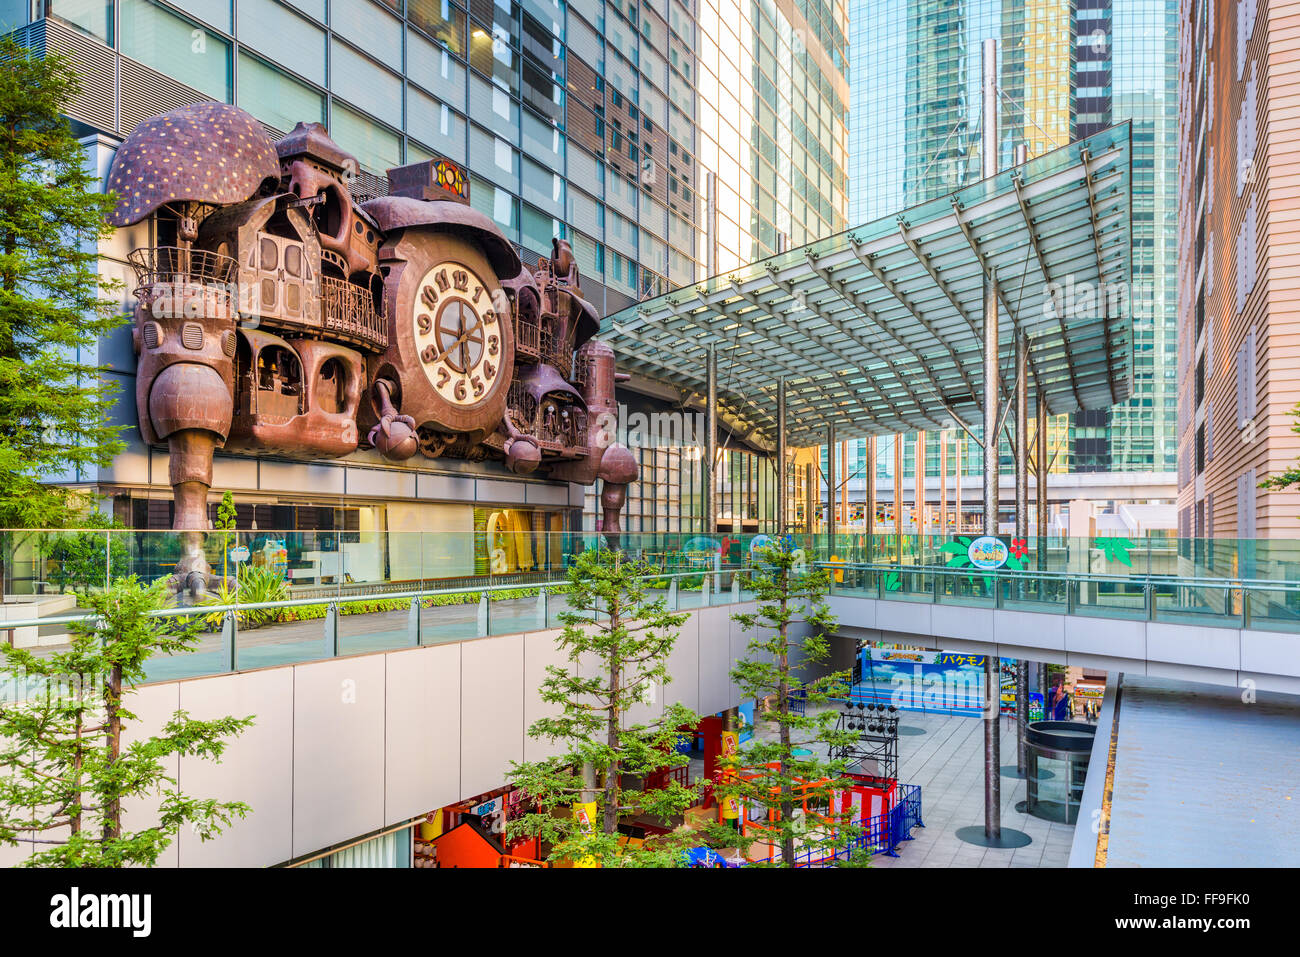 The NTV Building's fantasy inspired Large Clock in the Shiodome District of Tokyo, Japan. - Stock Image